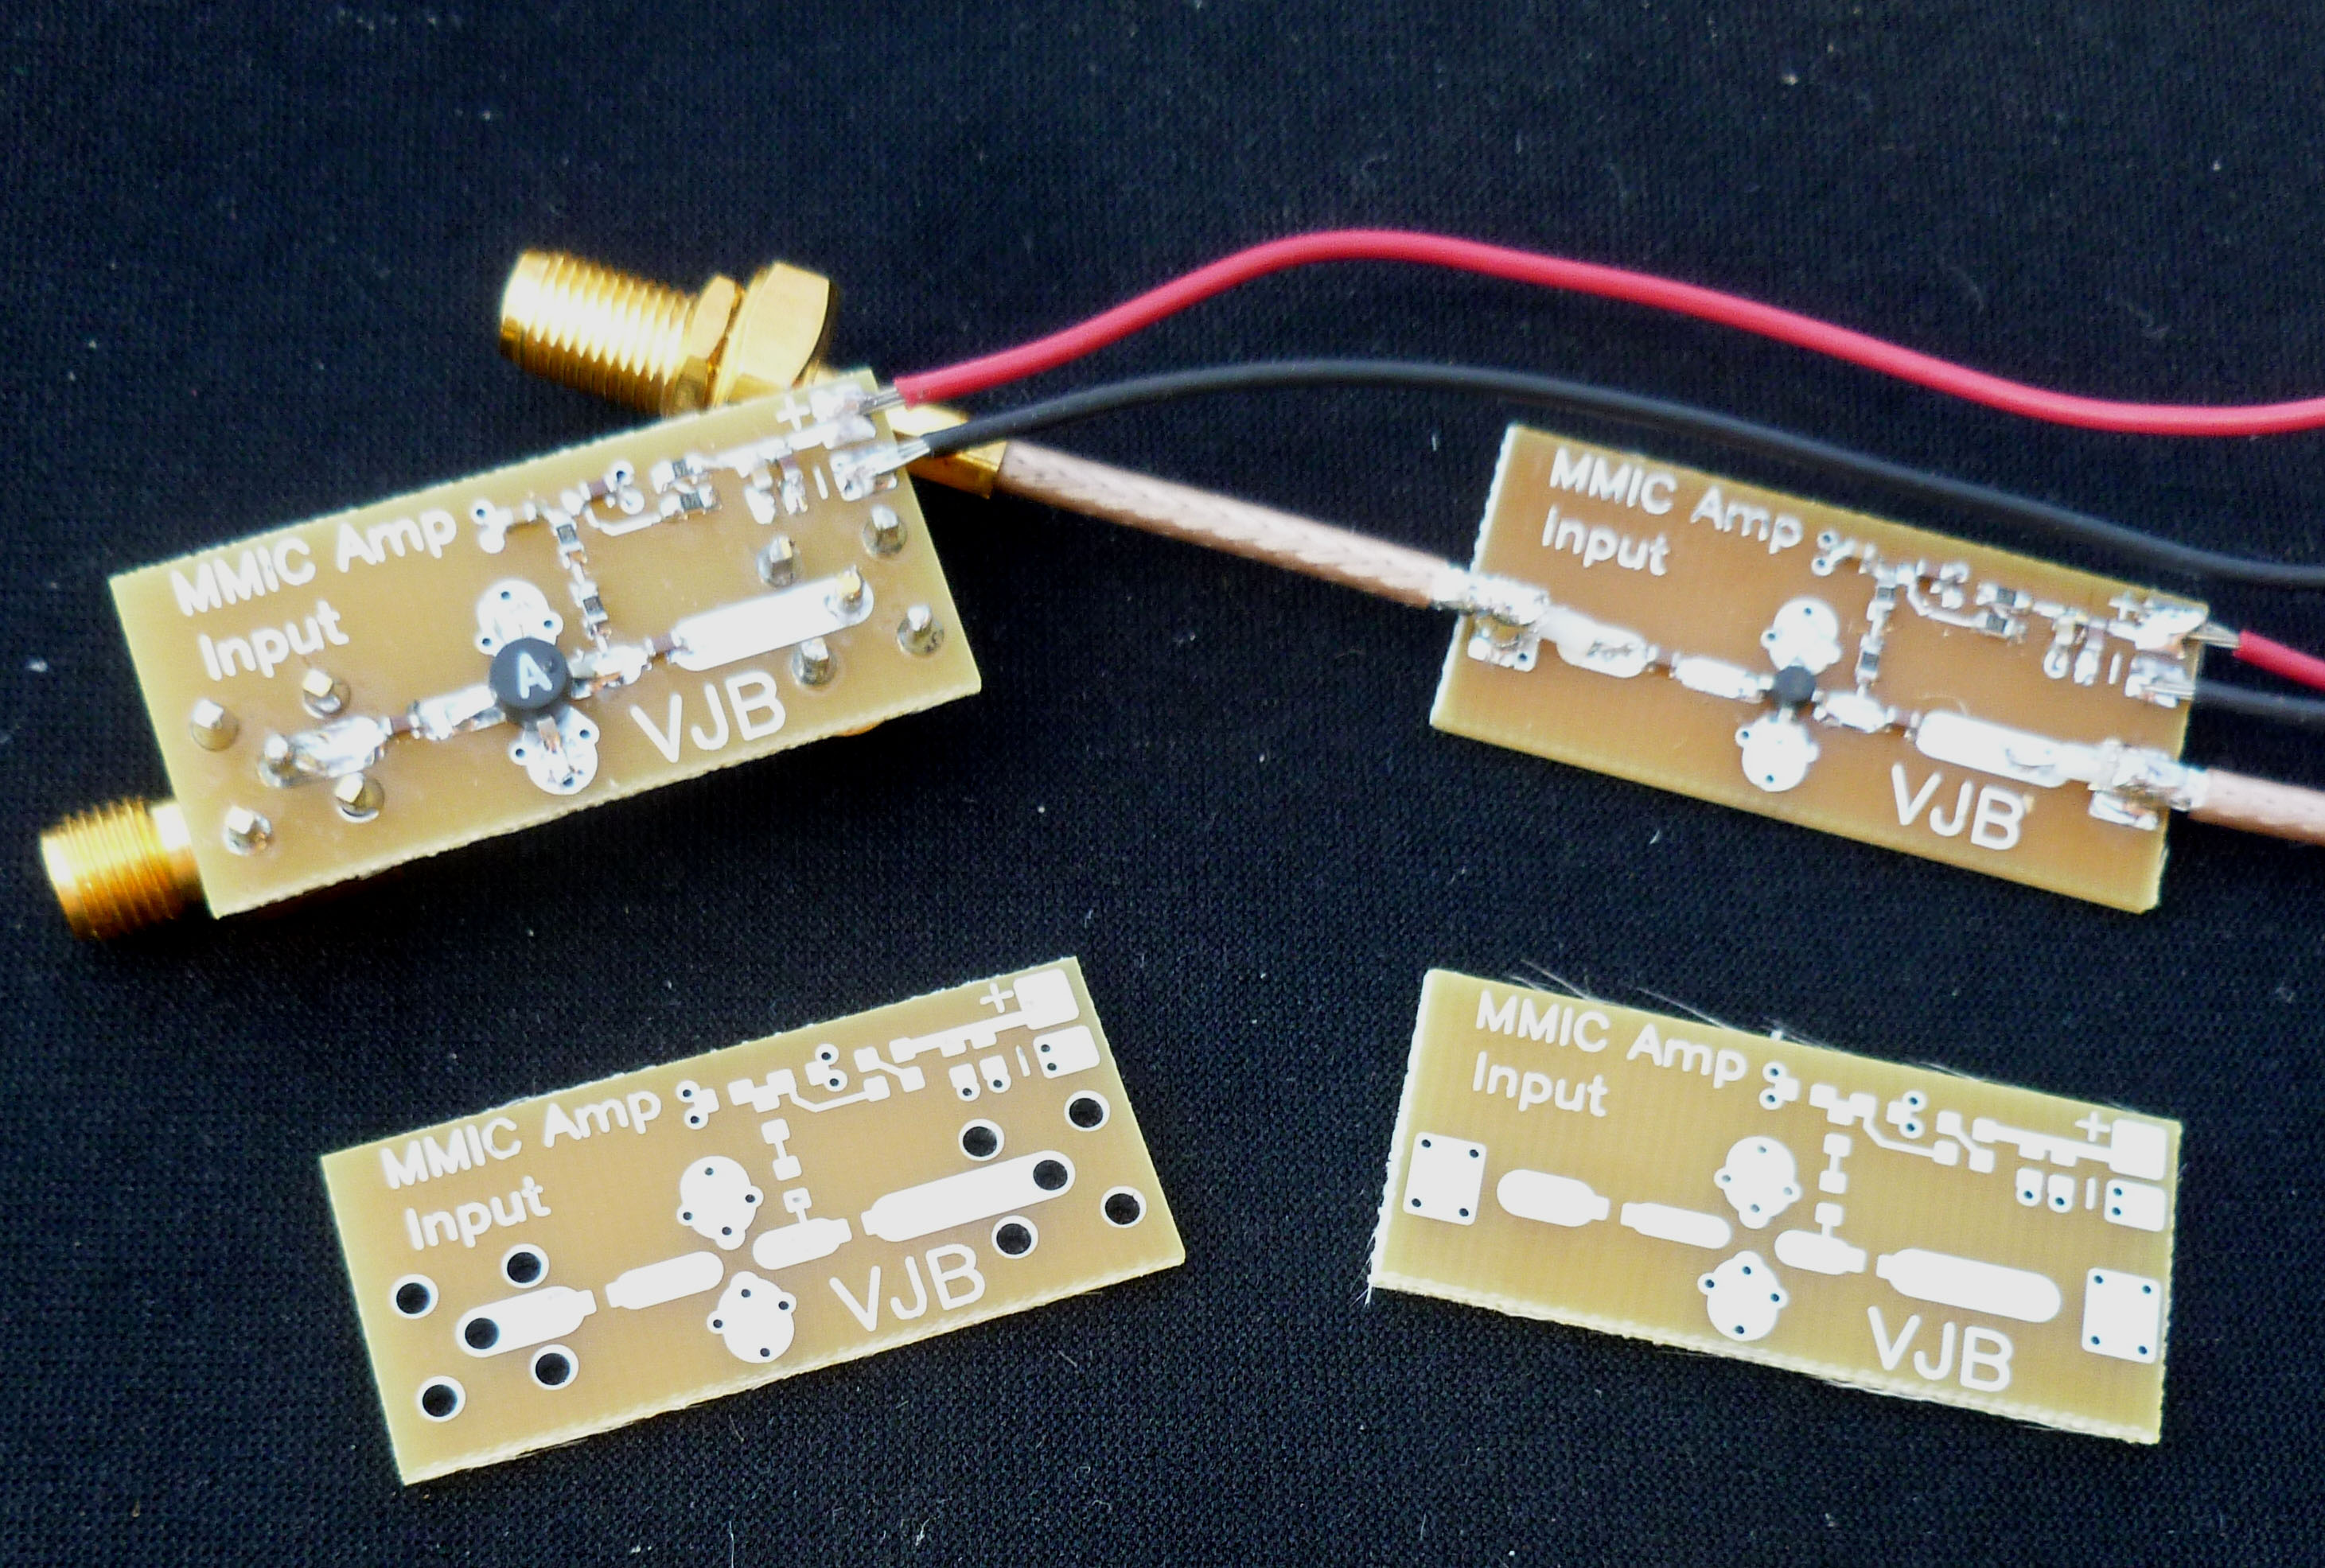 Printed Circuit Board Antennas Commercial And Hobby Aquisition Of Electronic Boards Pcbs Prototype Mmic